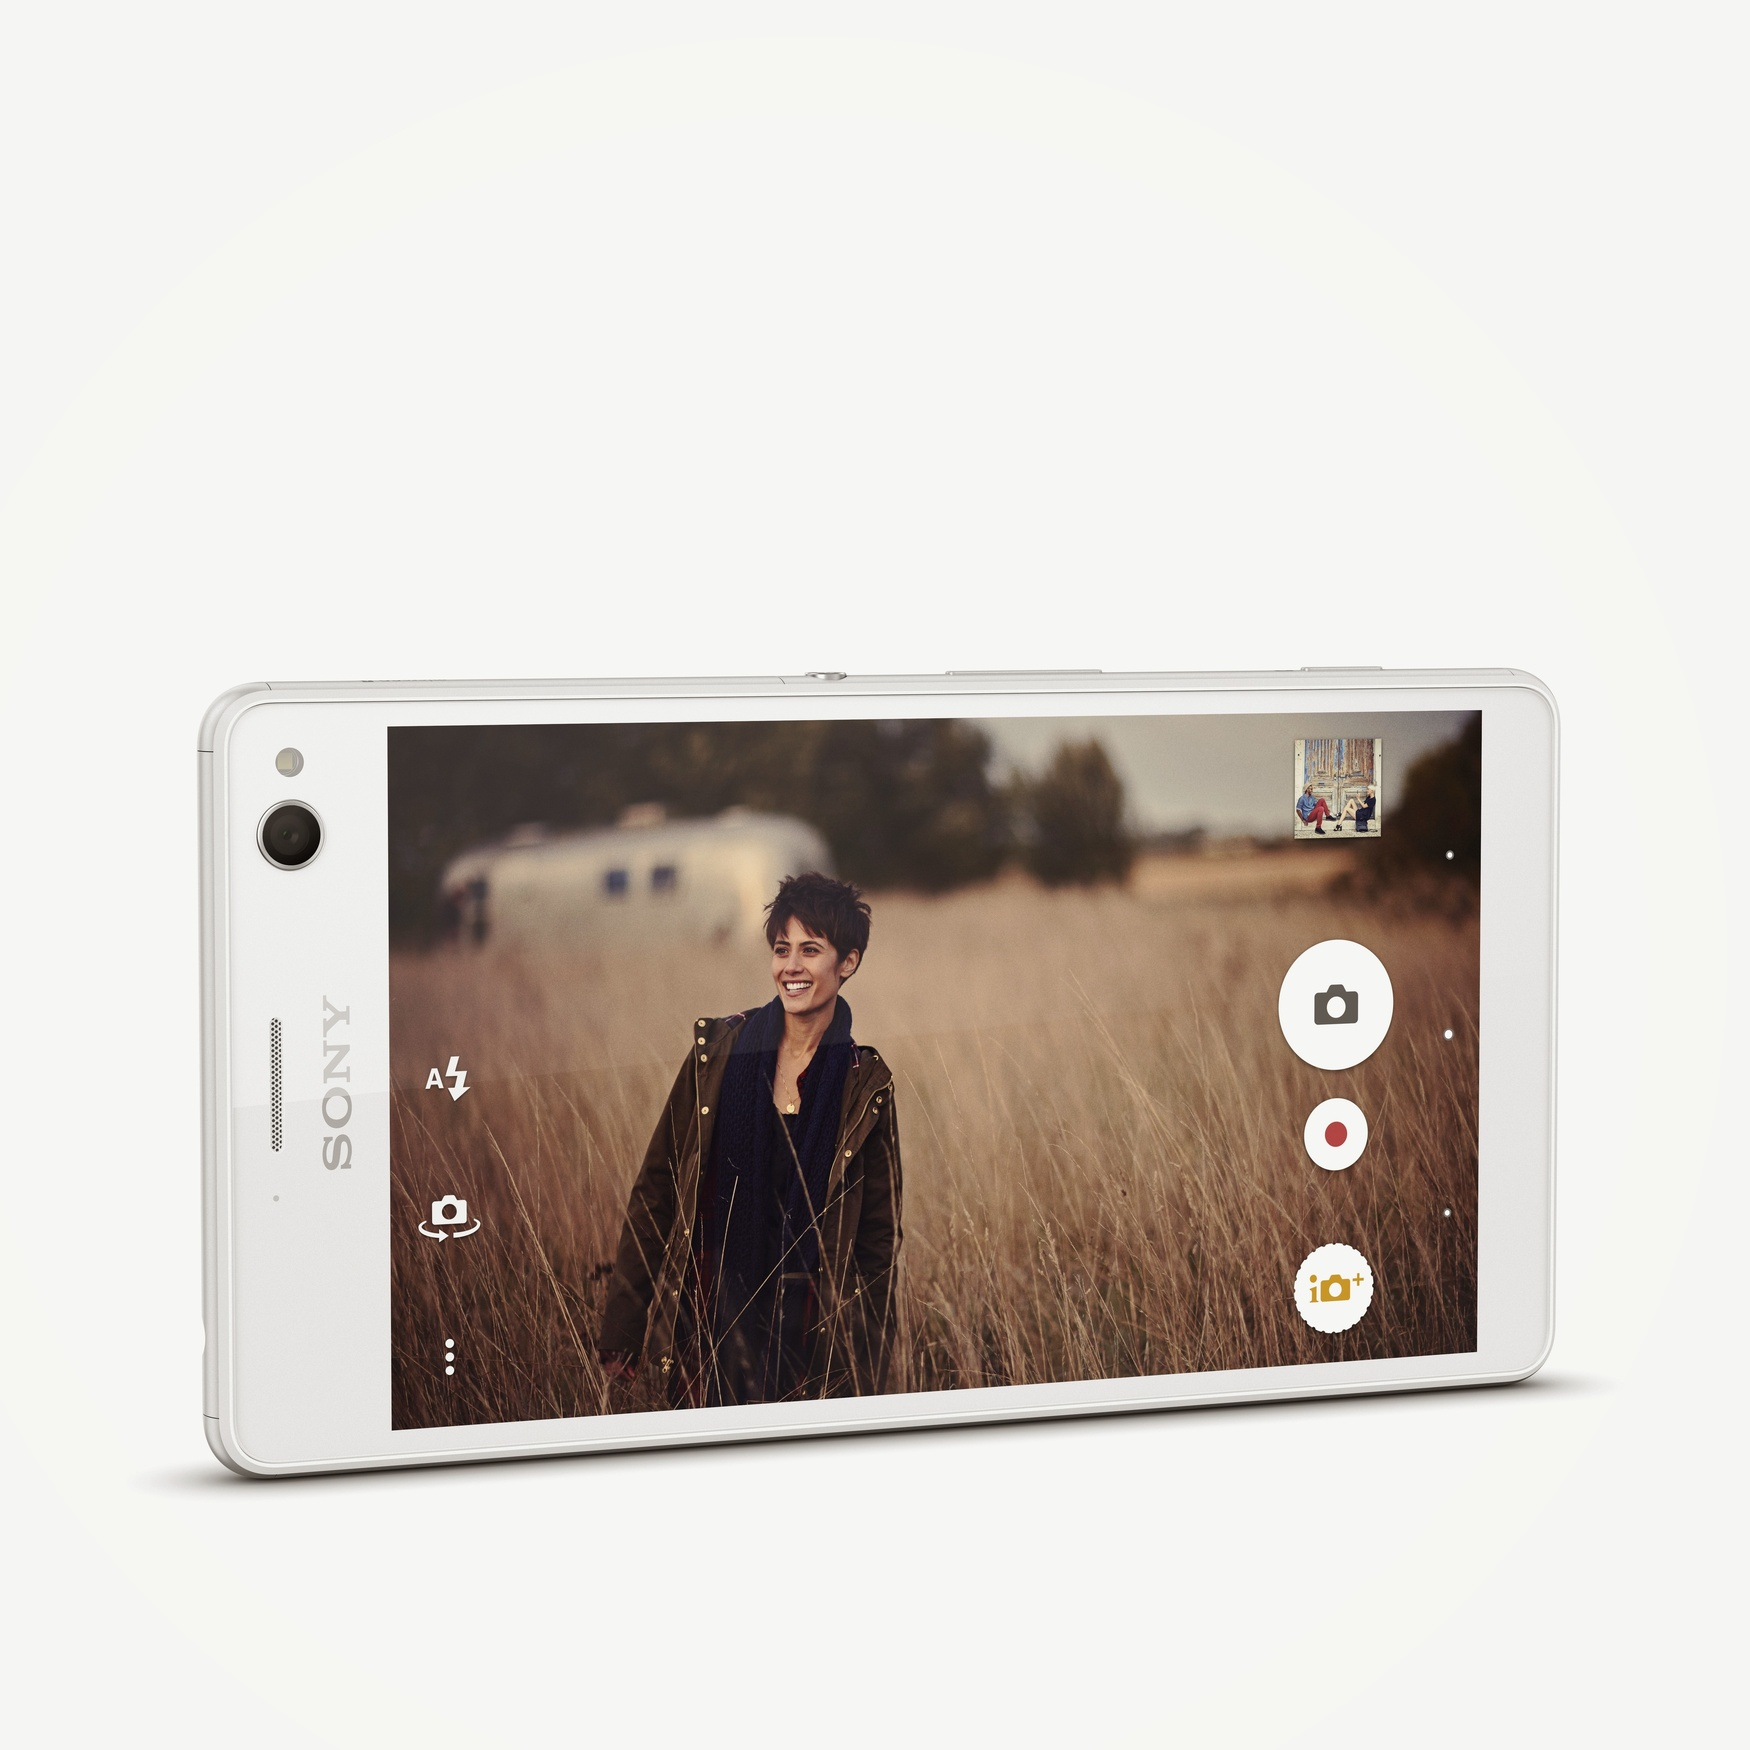 Sony-Xperia-C4-images (3)